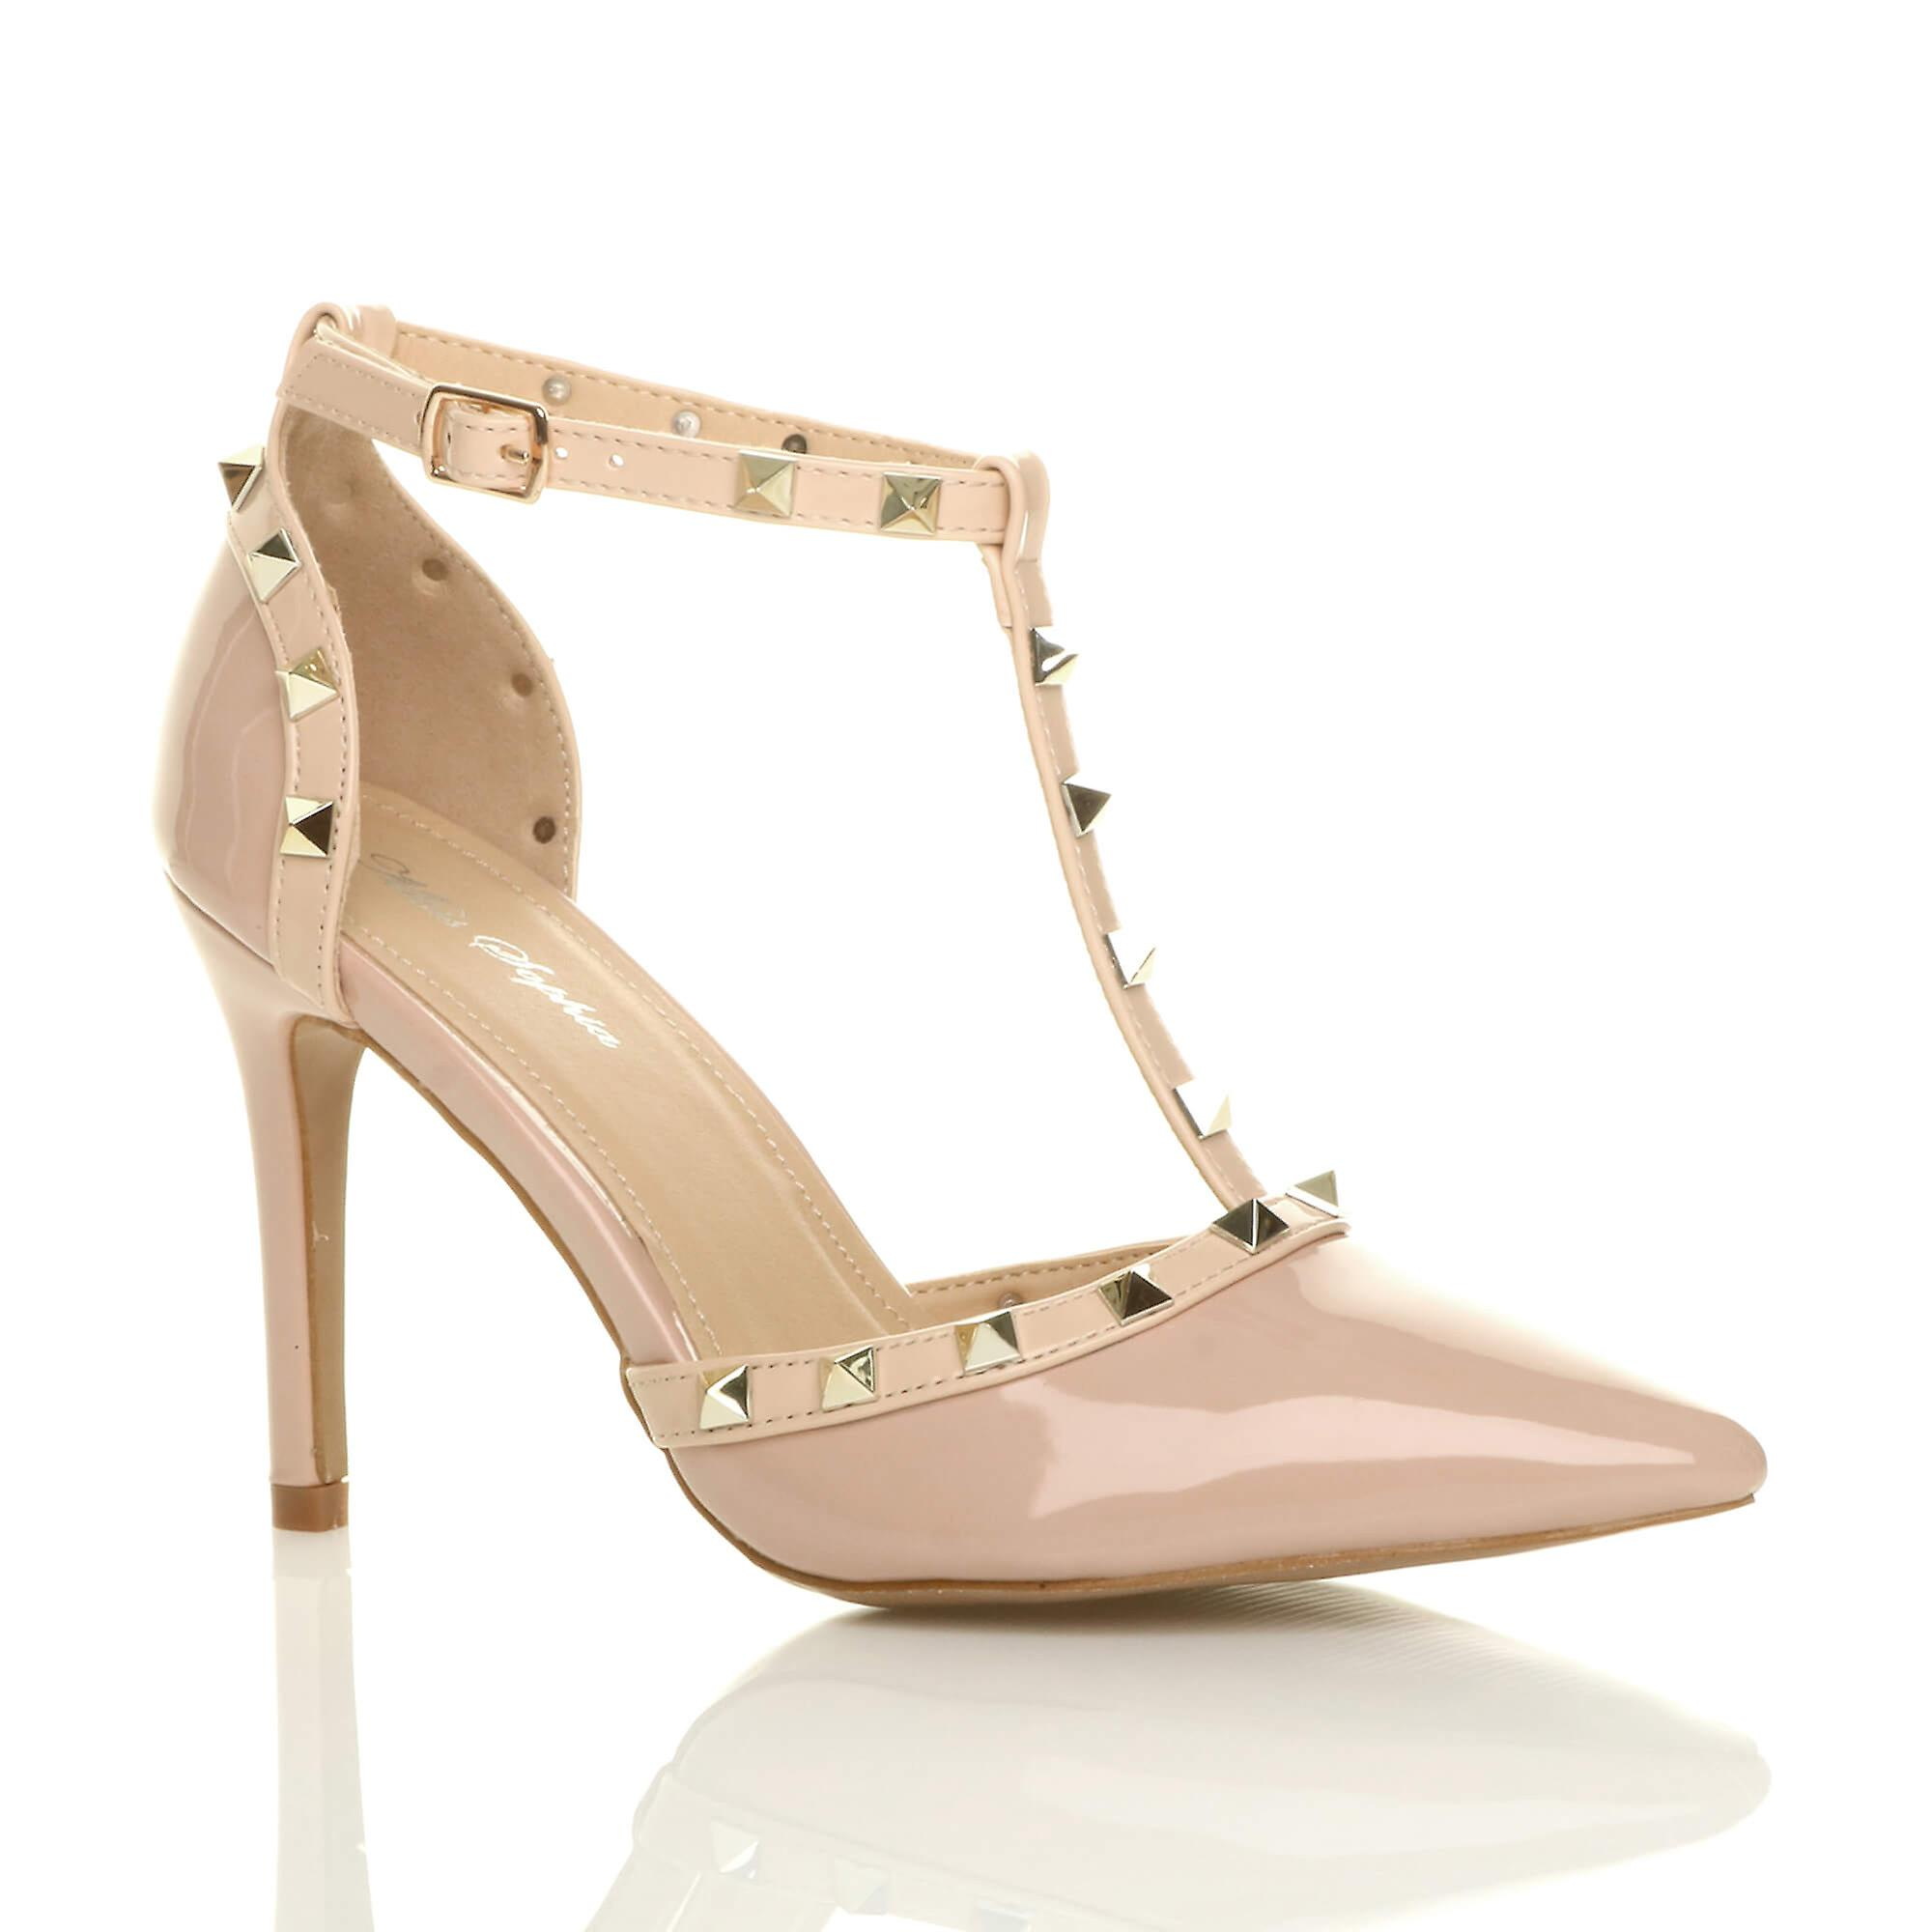 Ajvani womens high heel contrast studded t-bar pointed court shoes sandals